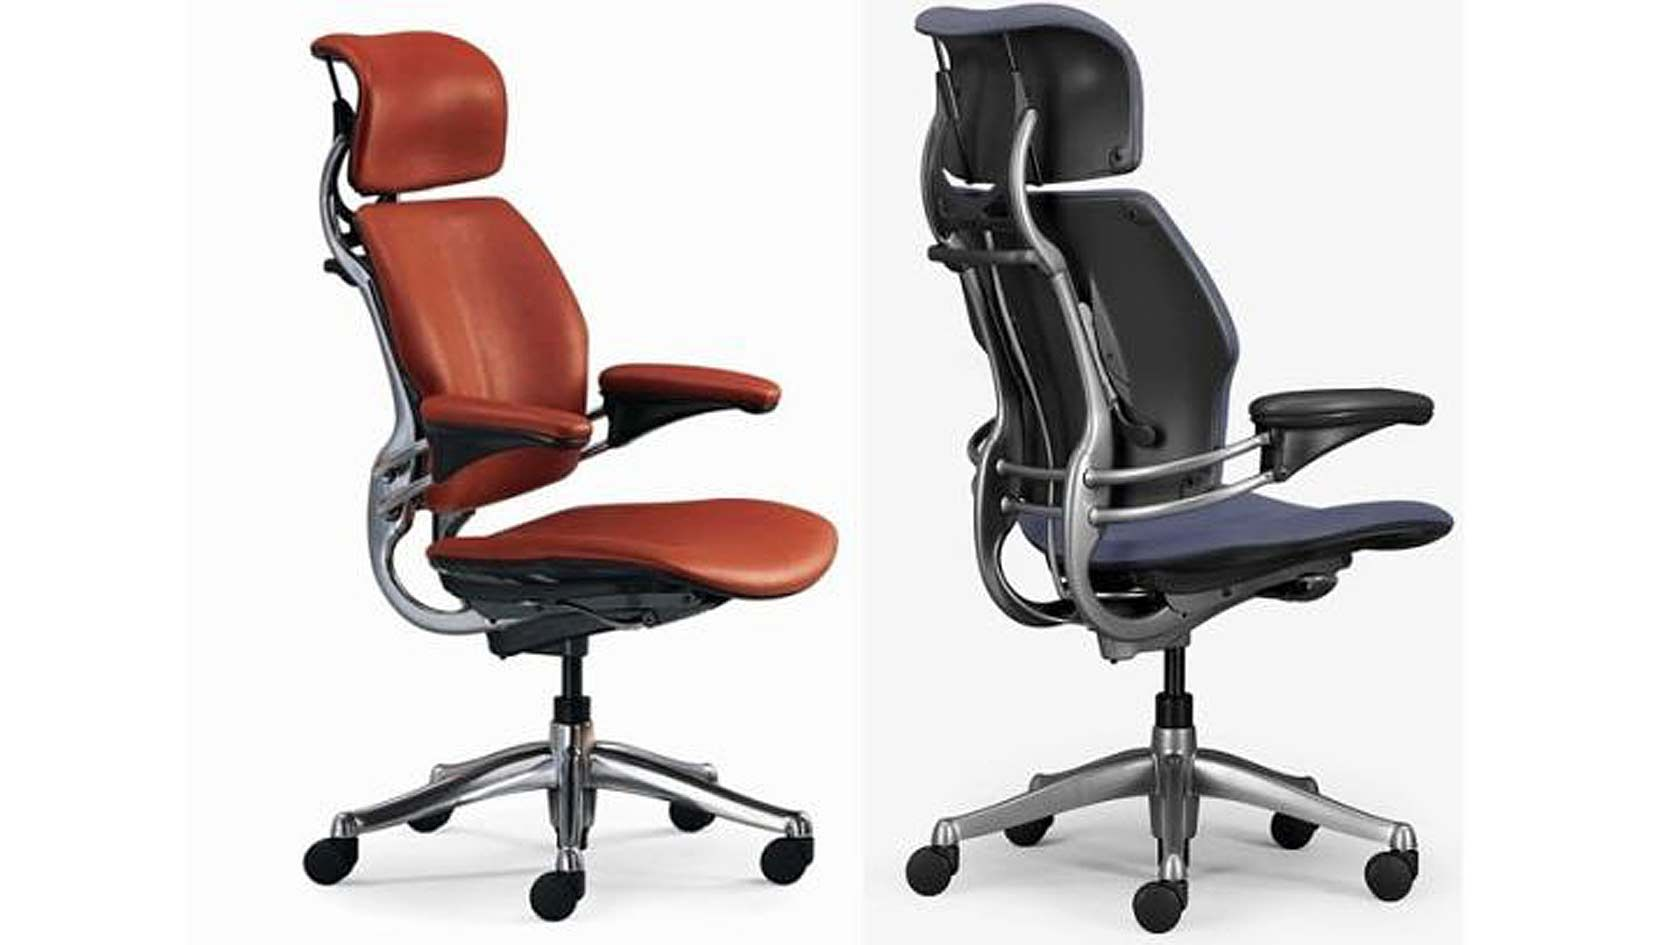 humanscale freedom chair - Google Search | Design Ideas ...